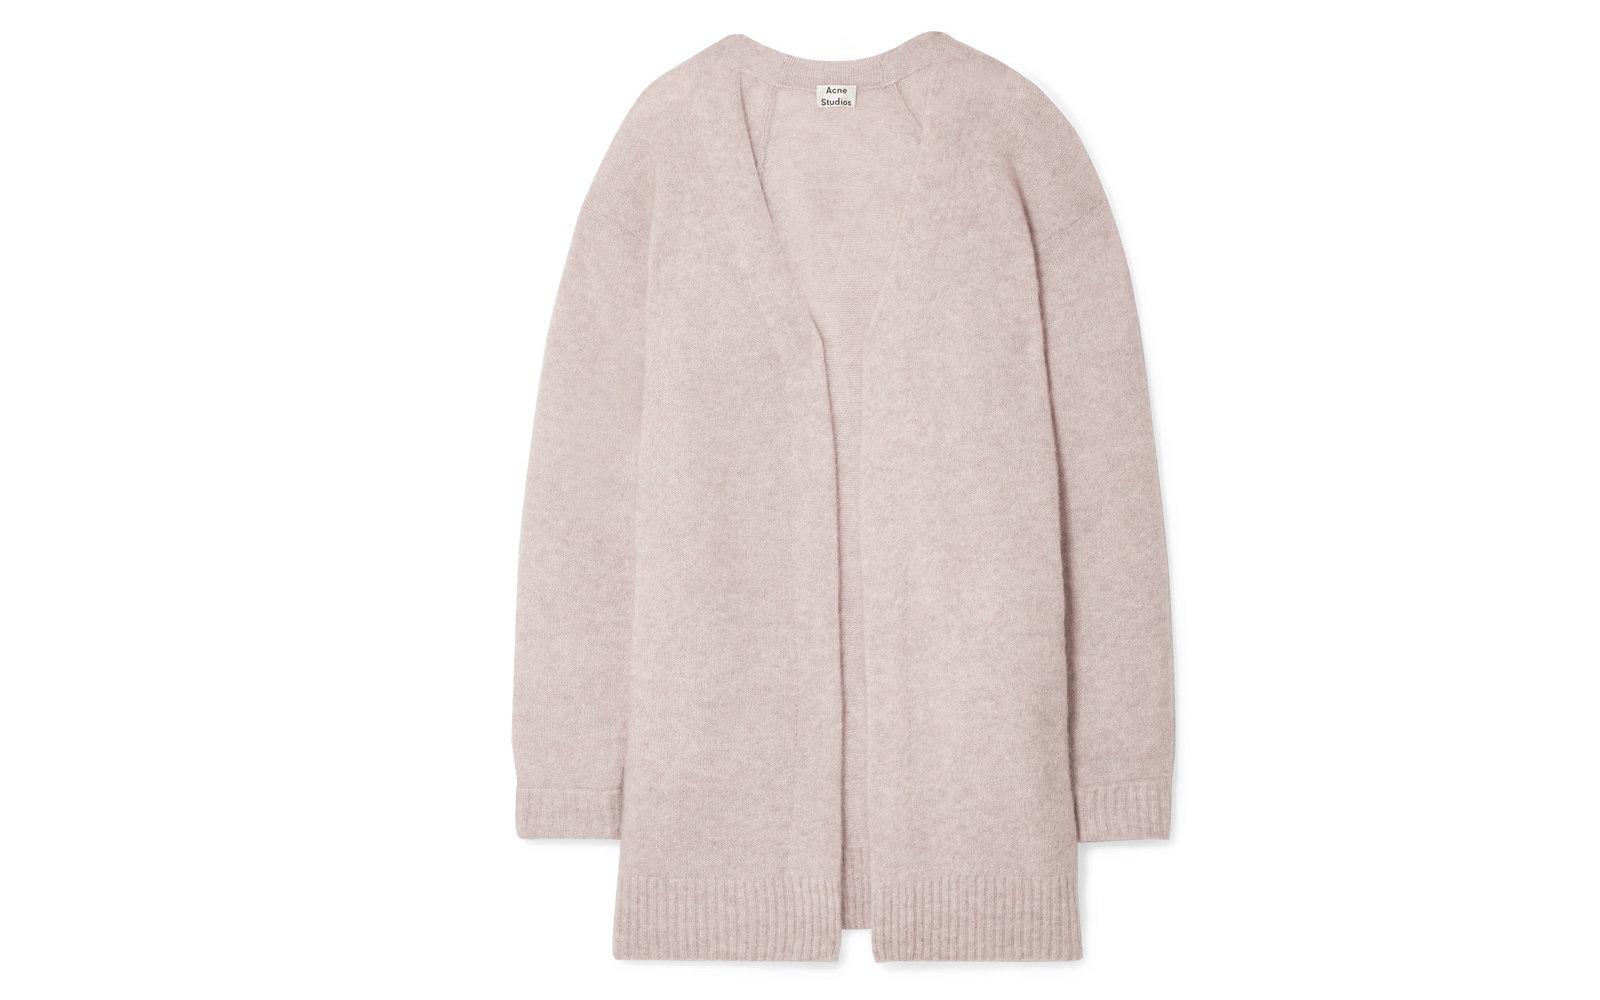 Travel Sweater Airplane Cardigan Fashion Acne Studios